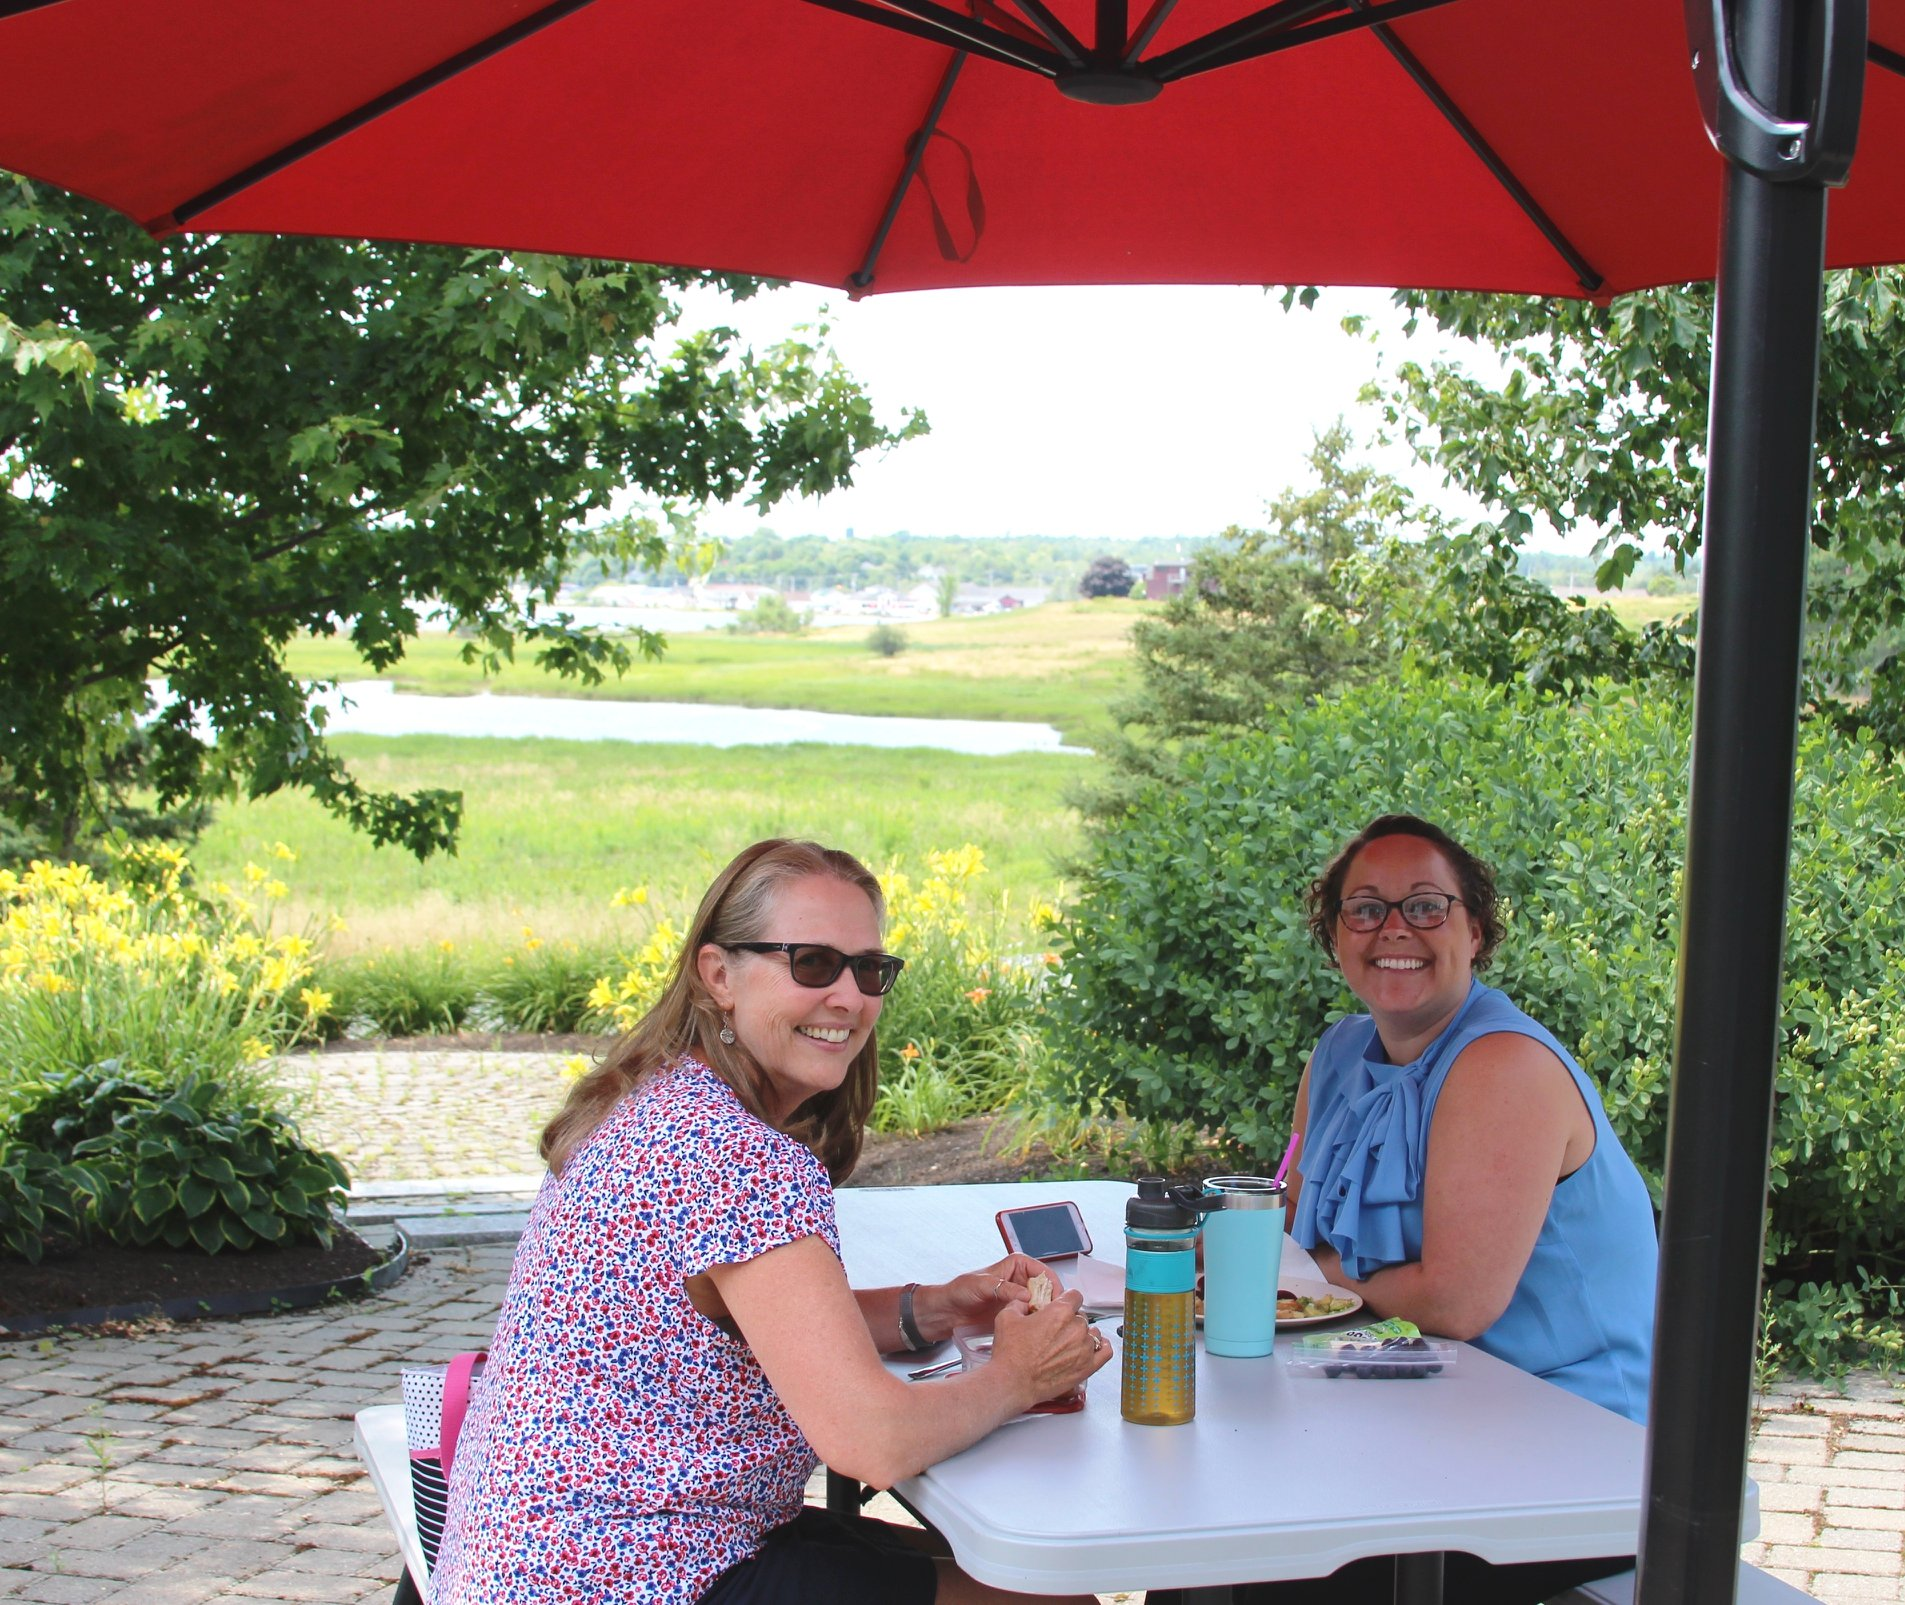 Grace and Devon took advantage of a glorious summer weather day by enjoying lunch on the patio